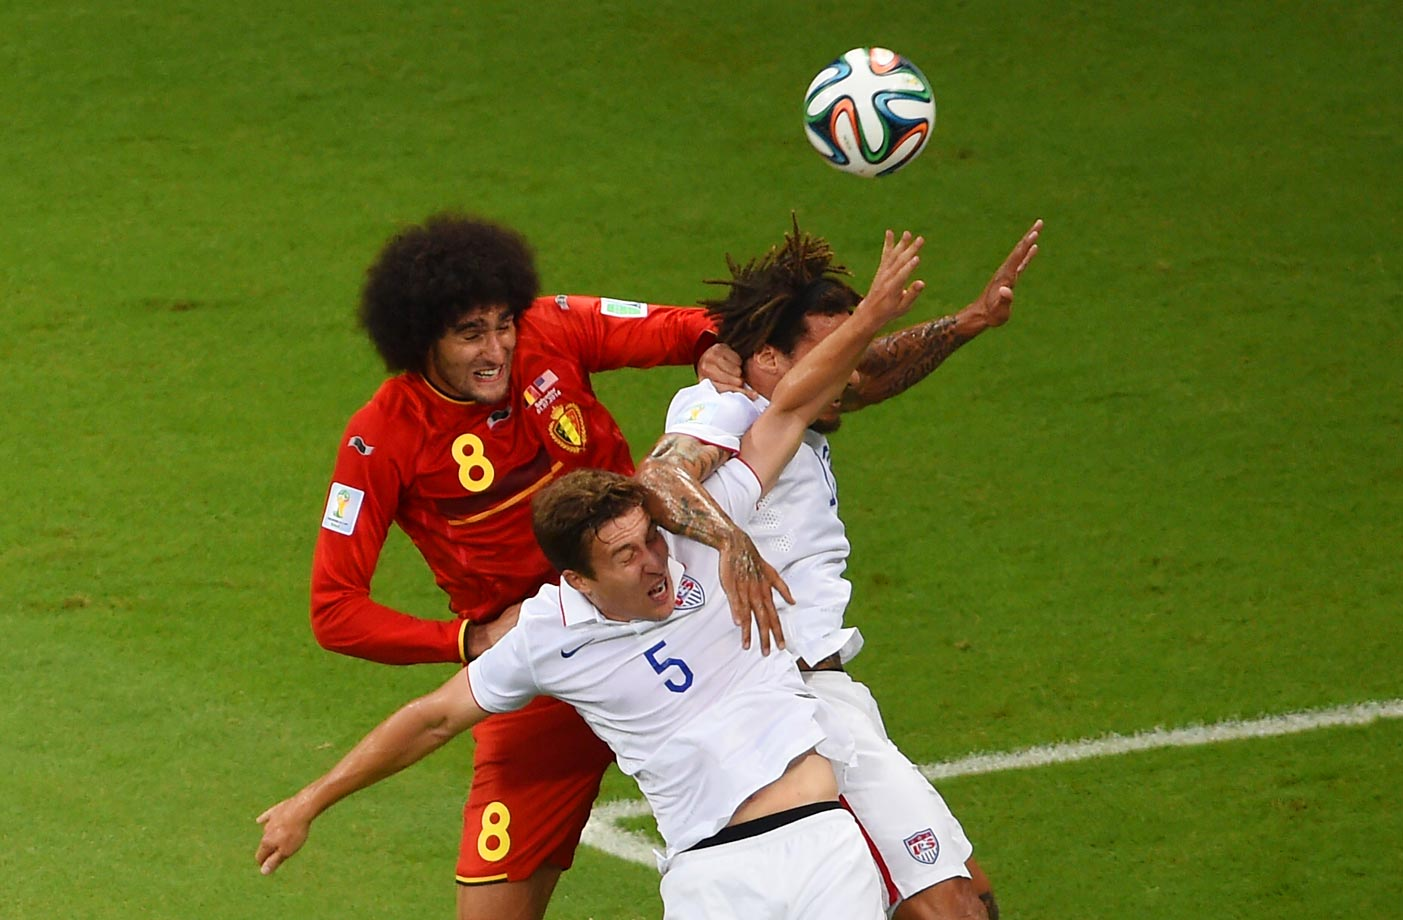 American teammates Matt Besler and Jermaine Jones challenge Belgium midfielder Marouane Fellaini in the first half.